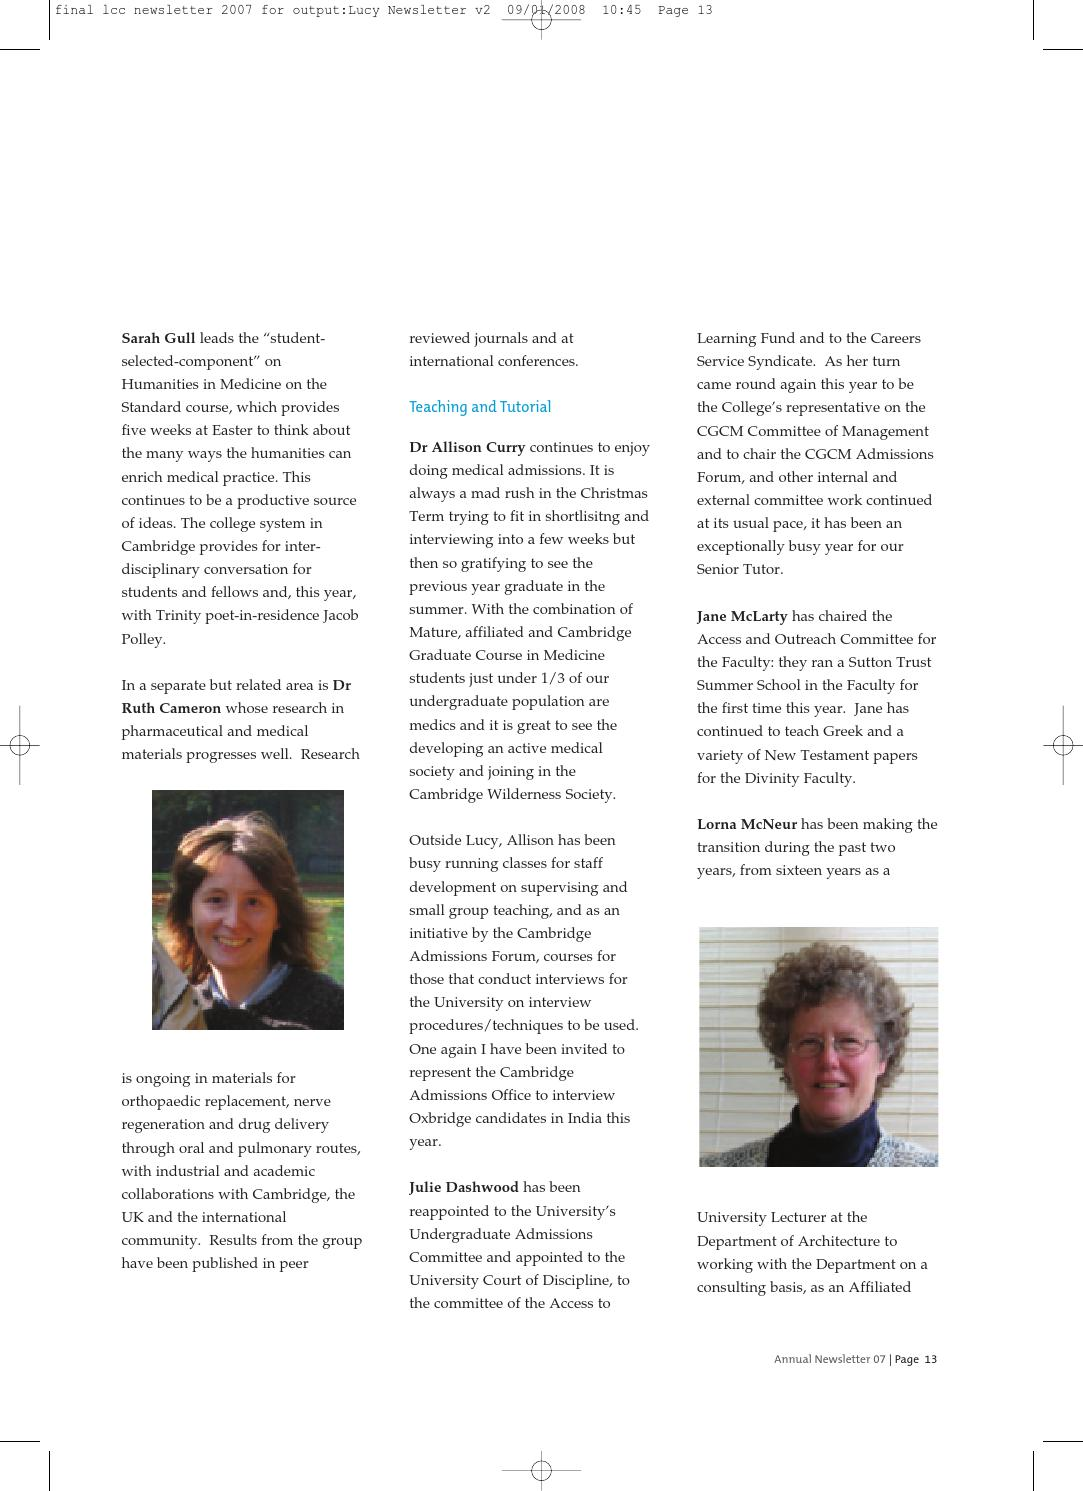 Newsletter 2007 newsletter by Lucy Cavendish College - issuu